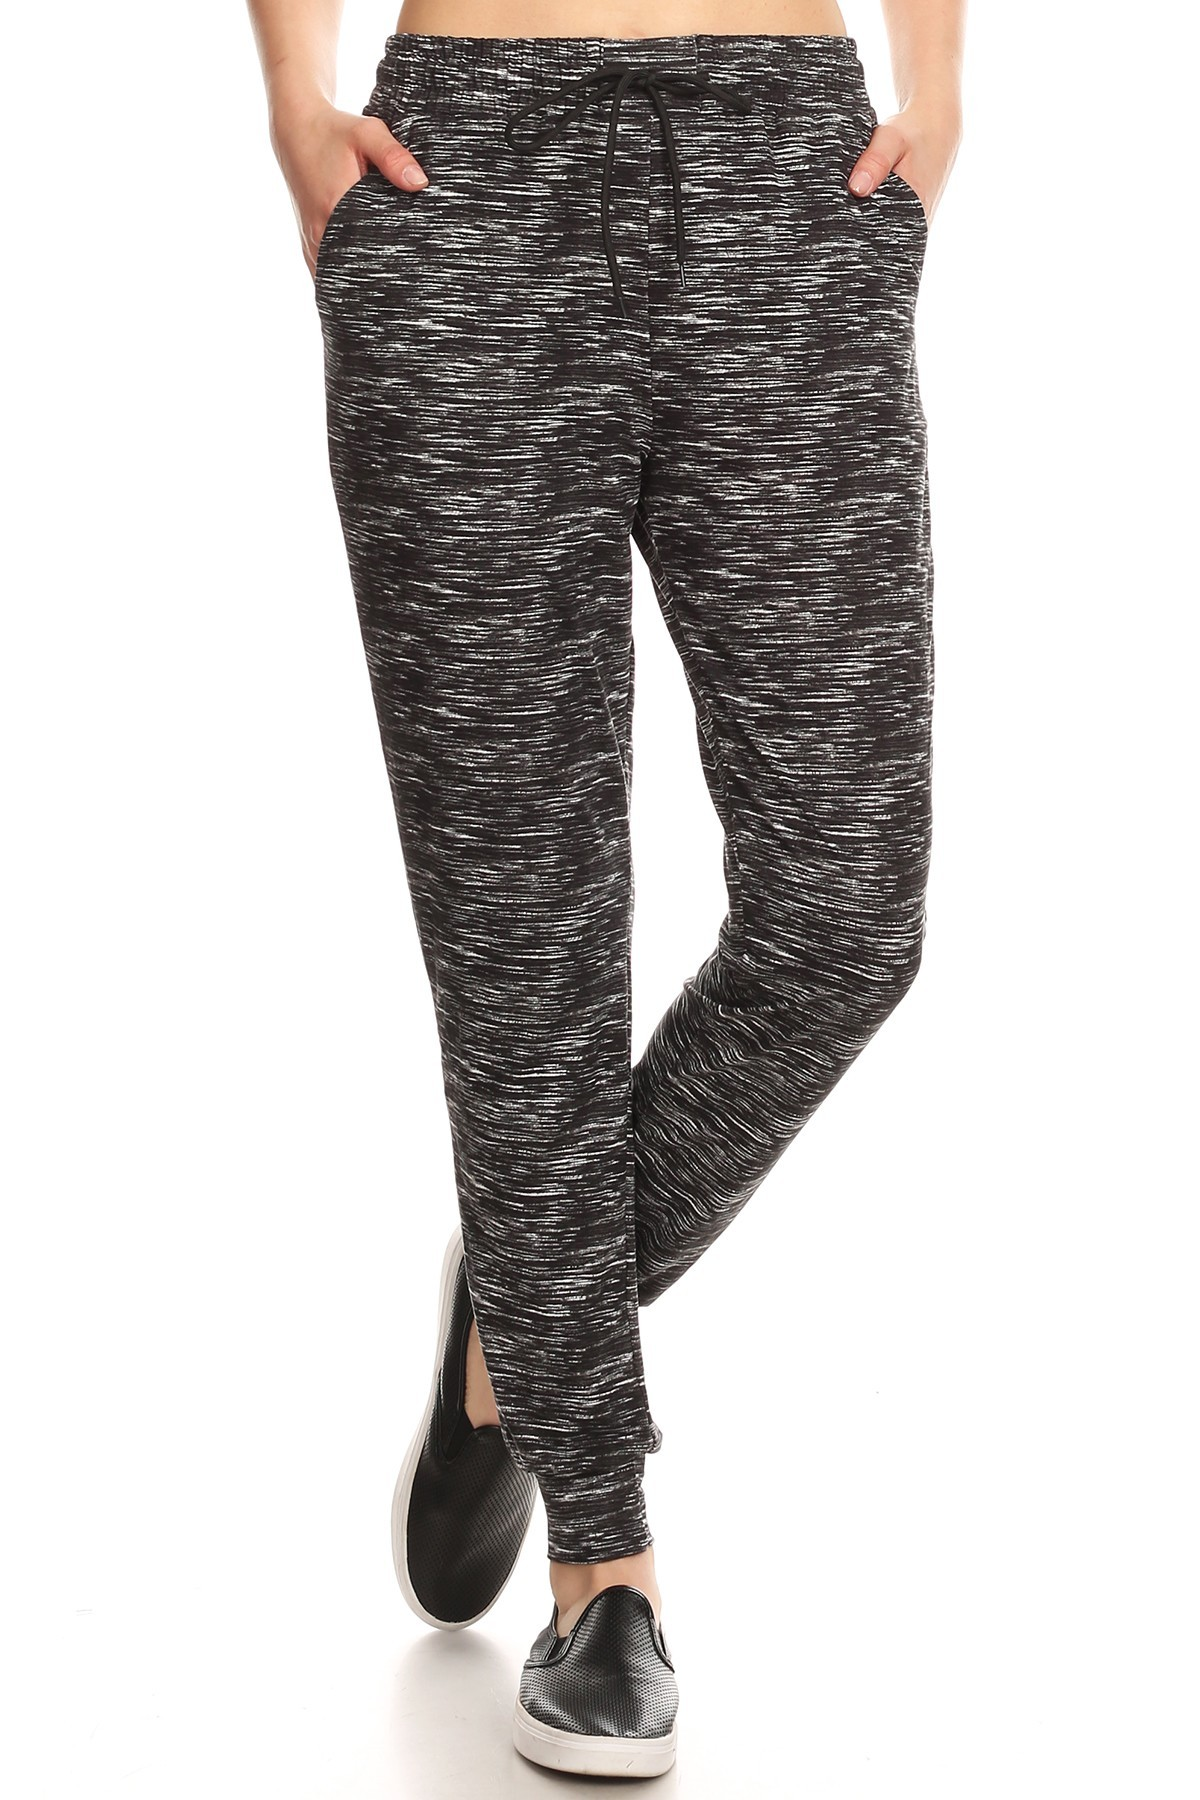 BLACK/WHITE SPACE DYE JOGGER WITH SHOE LACE TIE#8TRK36-11